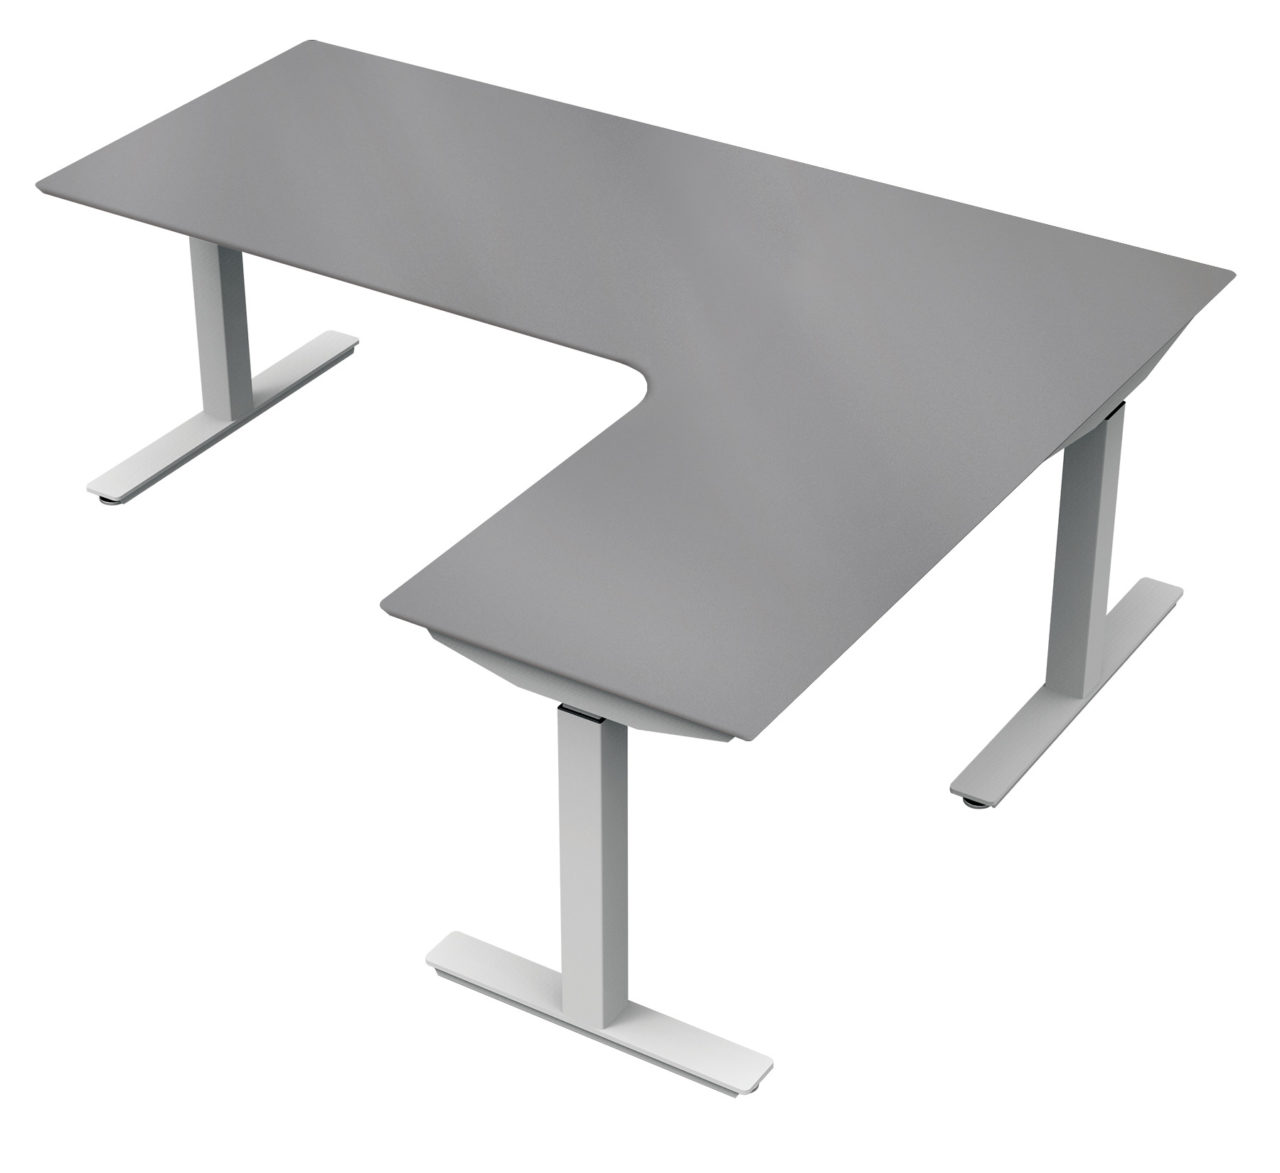 Electric Height Adjustable Tables ErgoCentric - Electrically driven adjustable table legs